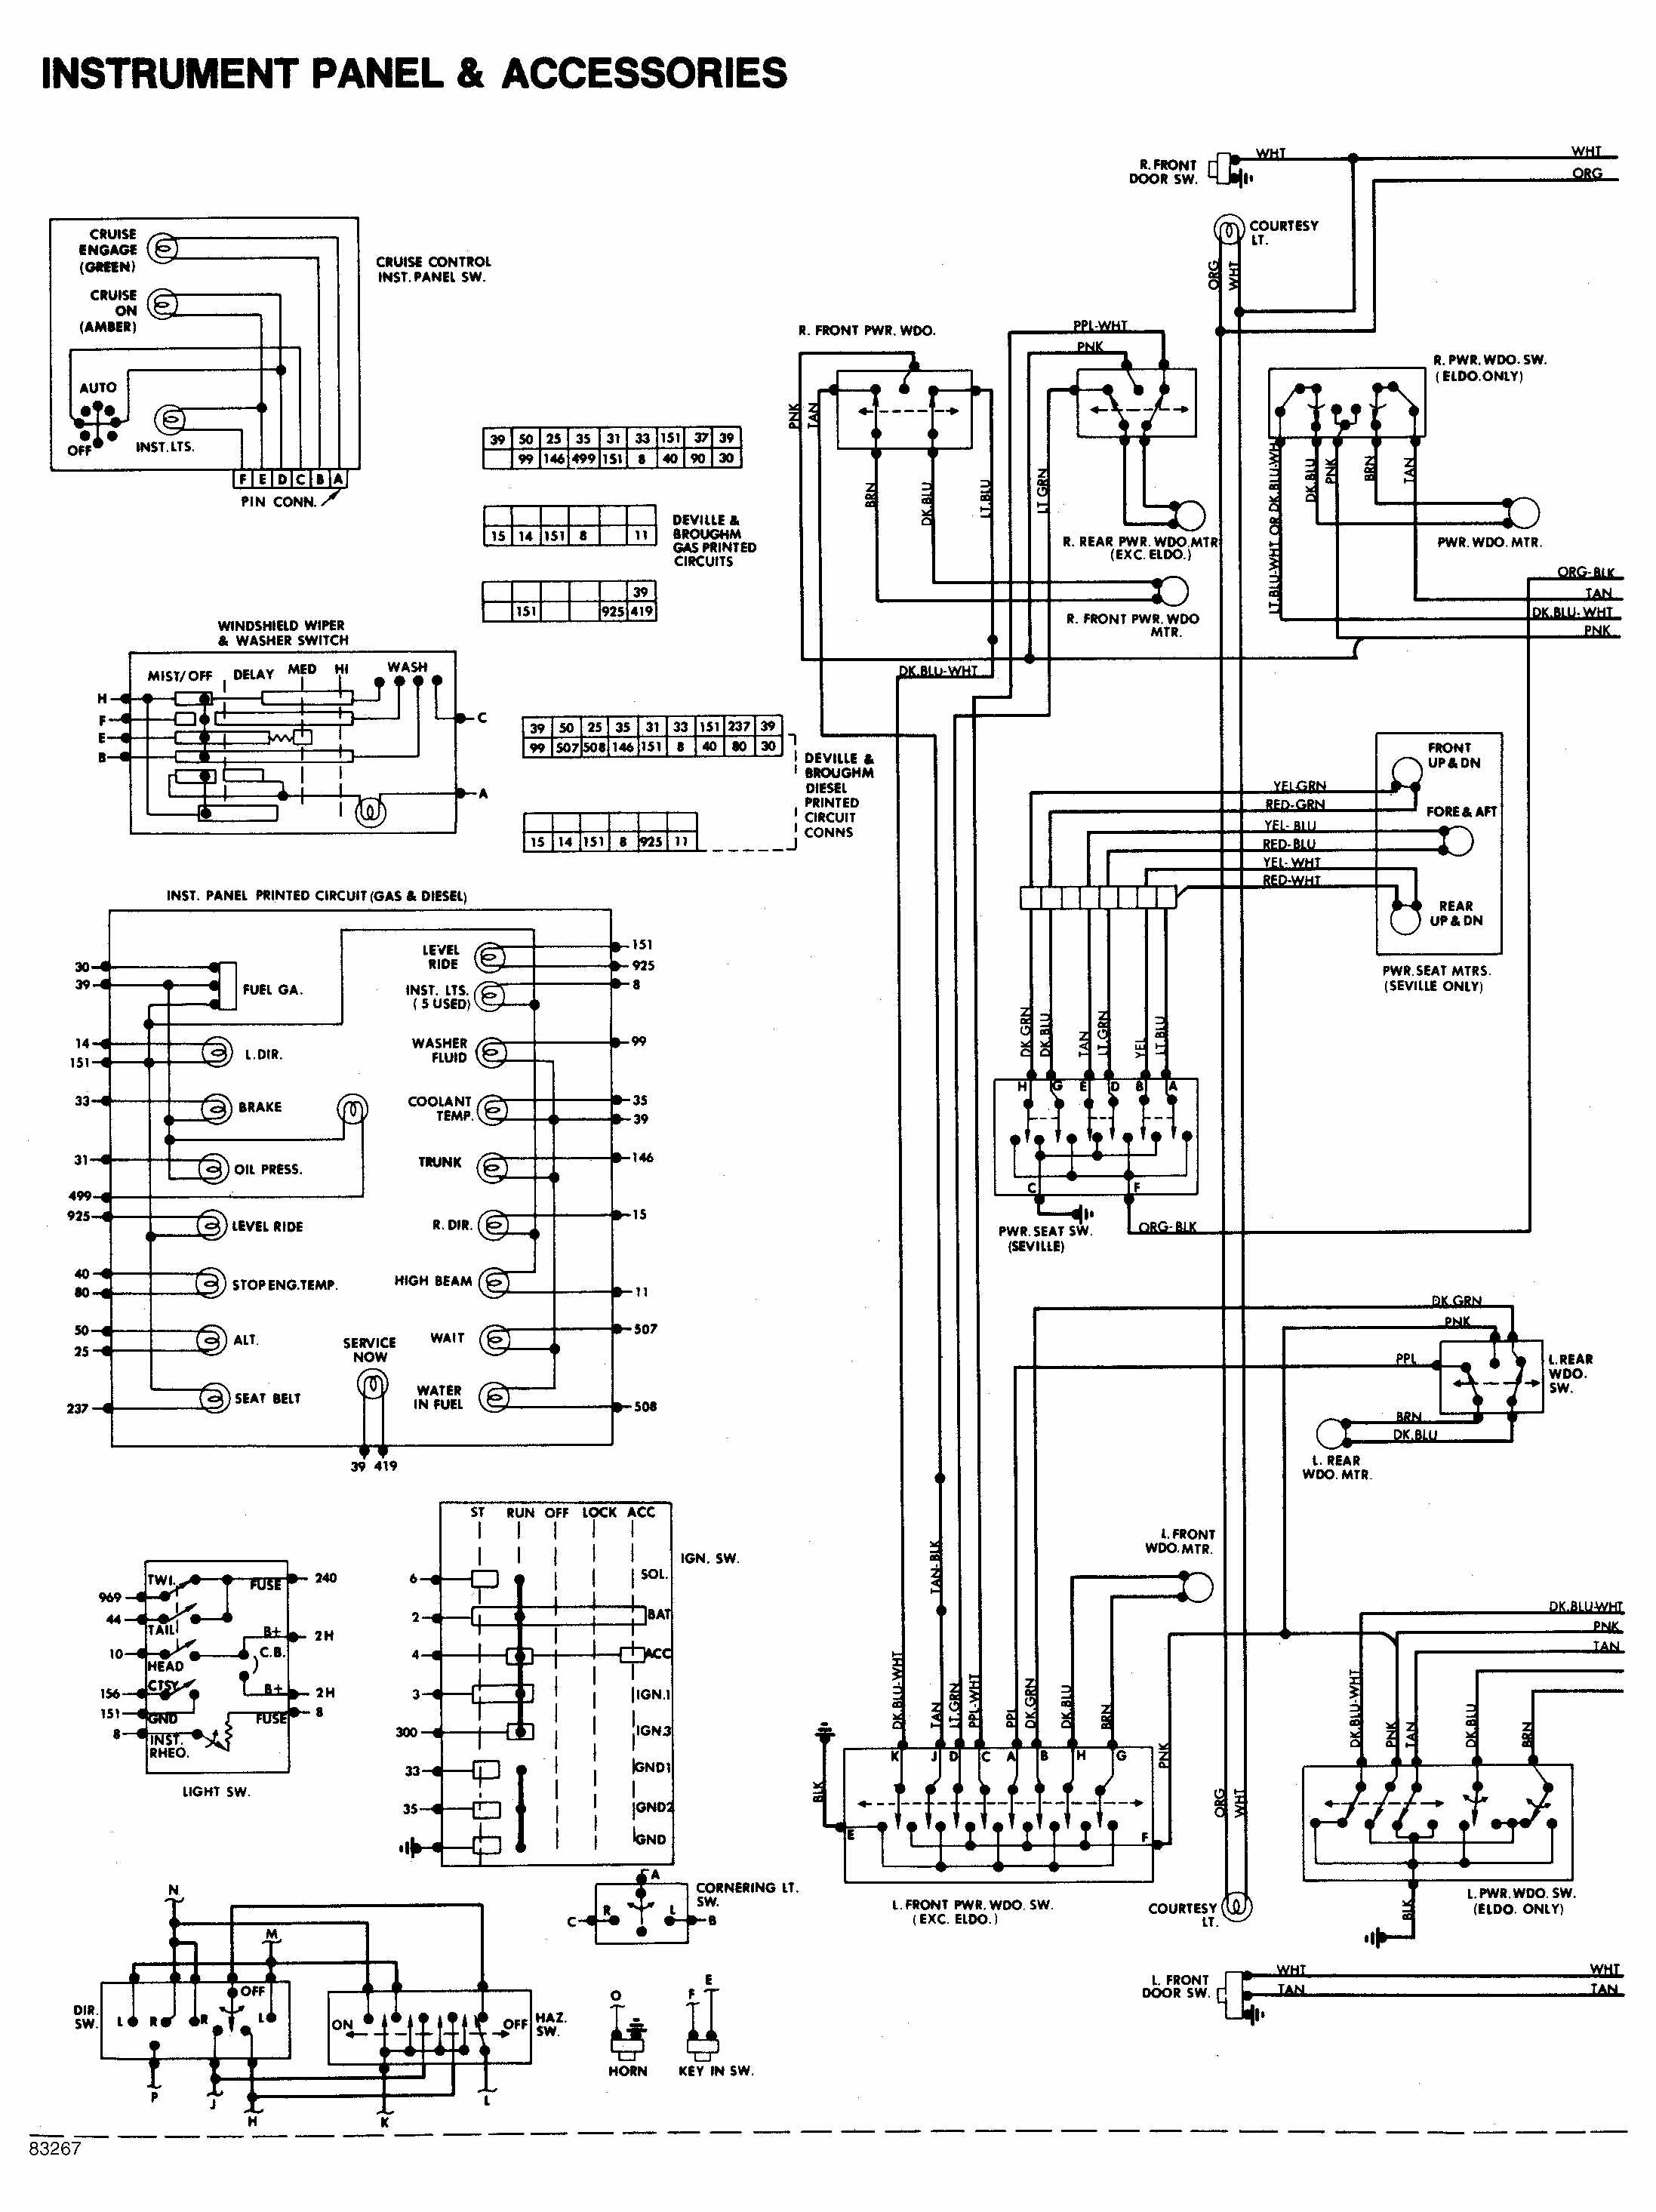 1969 Corvette Power Window Wiring Diagram - Wiring DATA • on 1977 corvette power window wiring diagram, 1975 corvette power window wiring diagram, 1968 corvette power window wiring diagram,